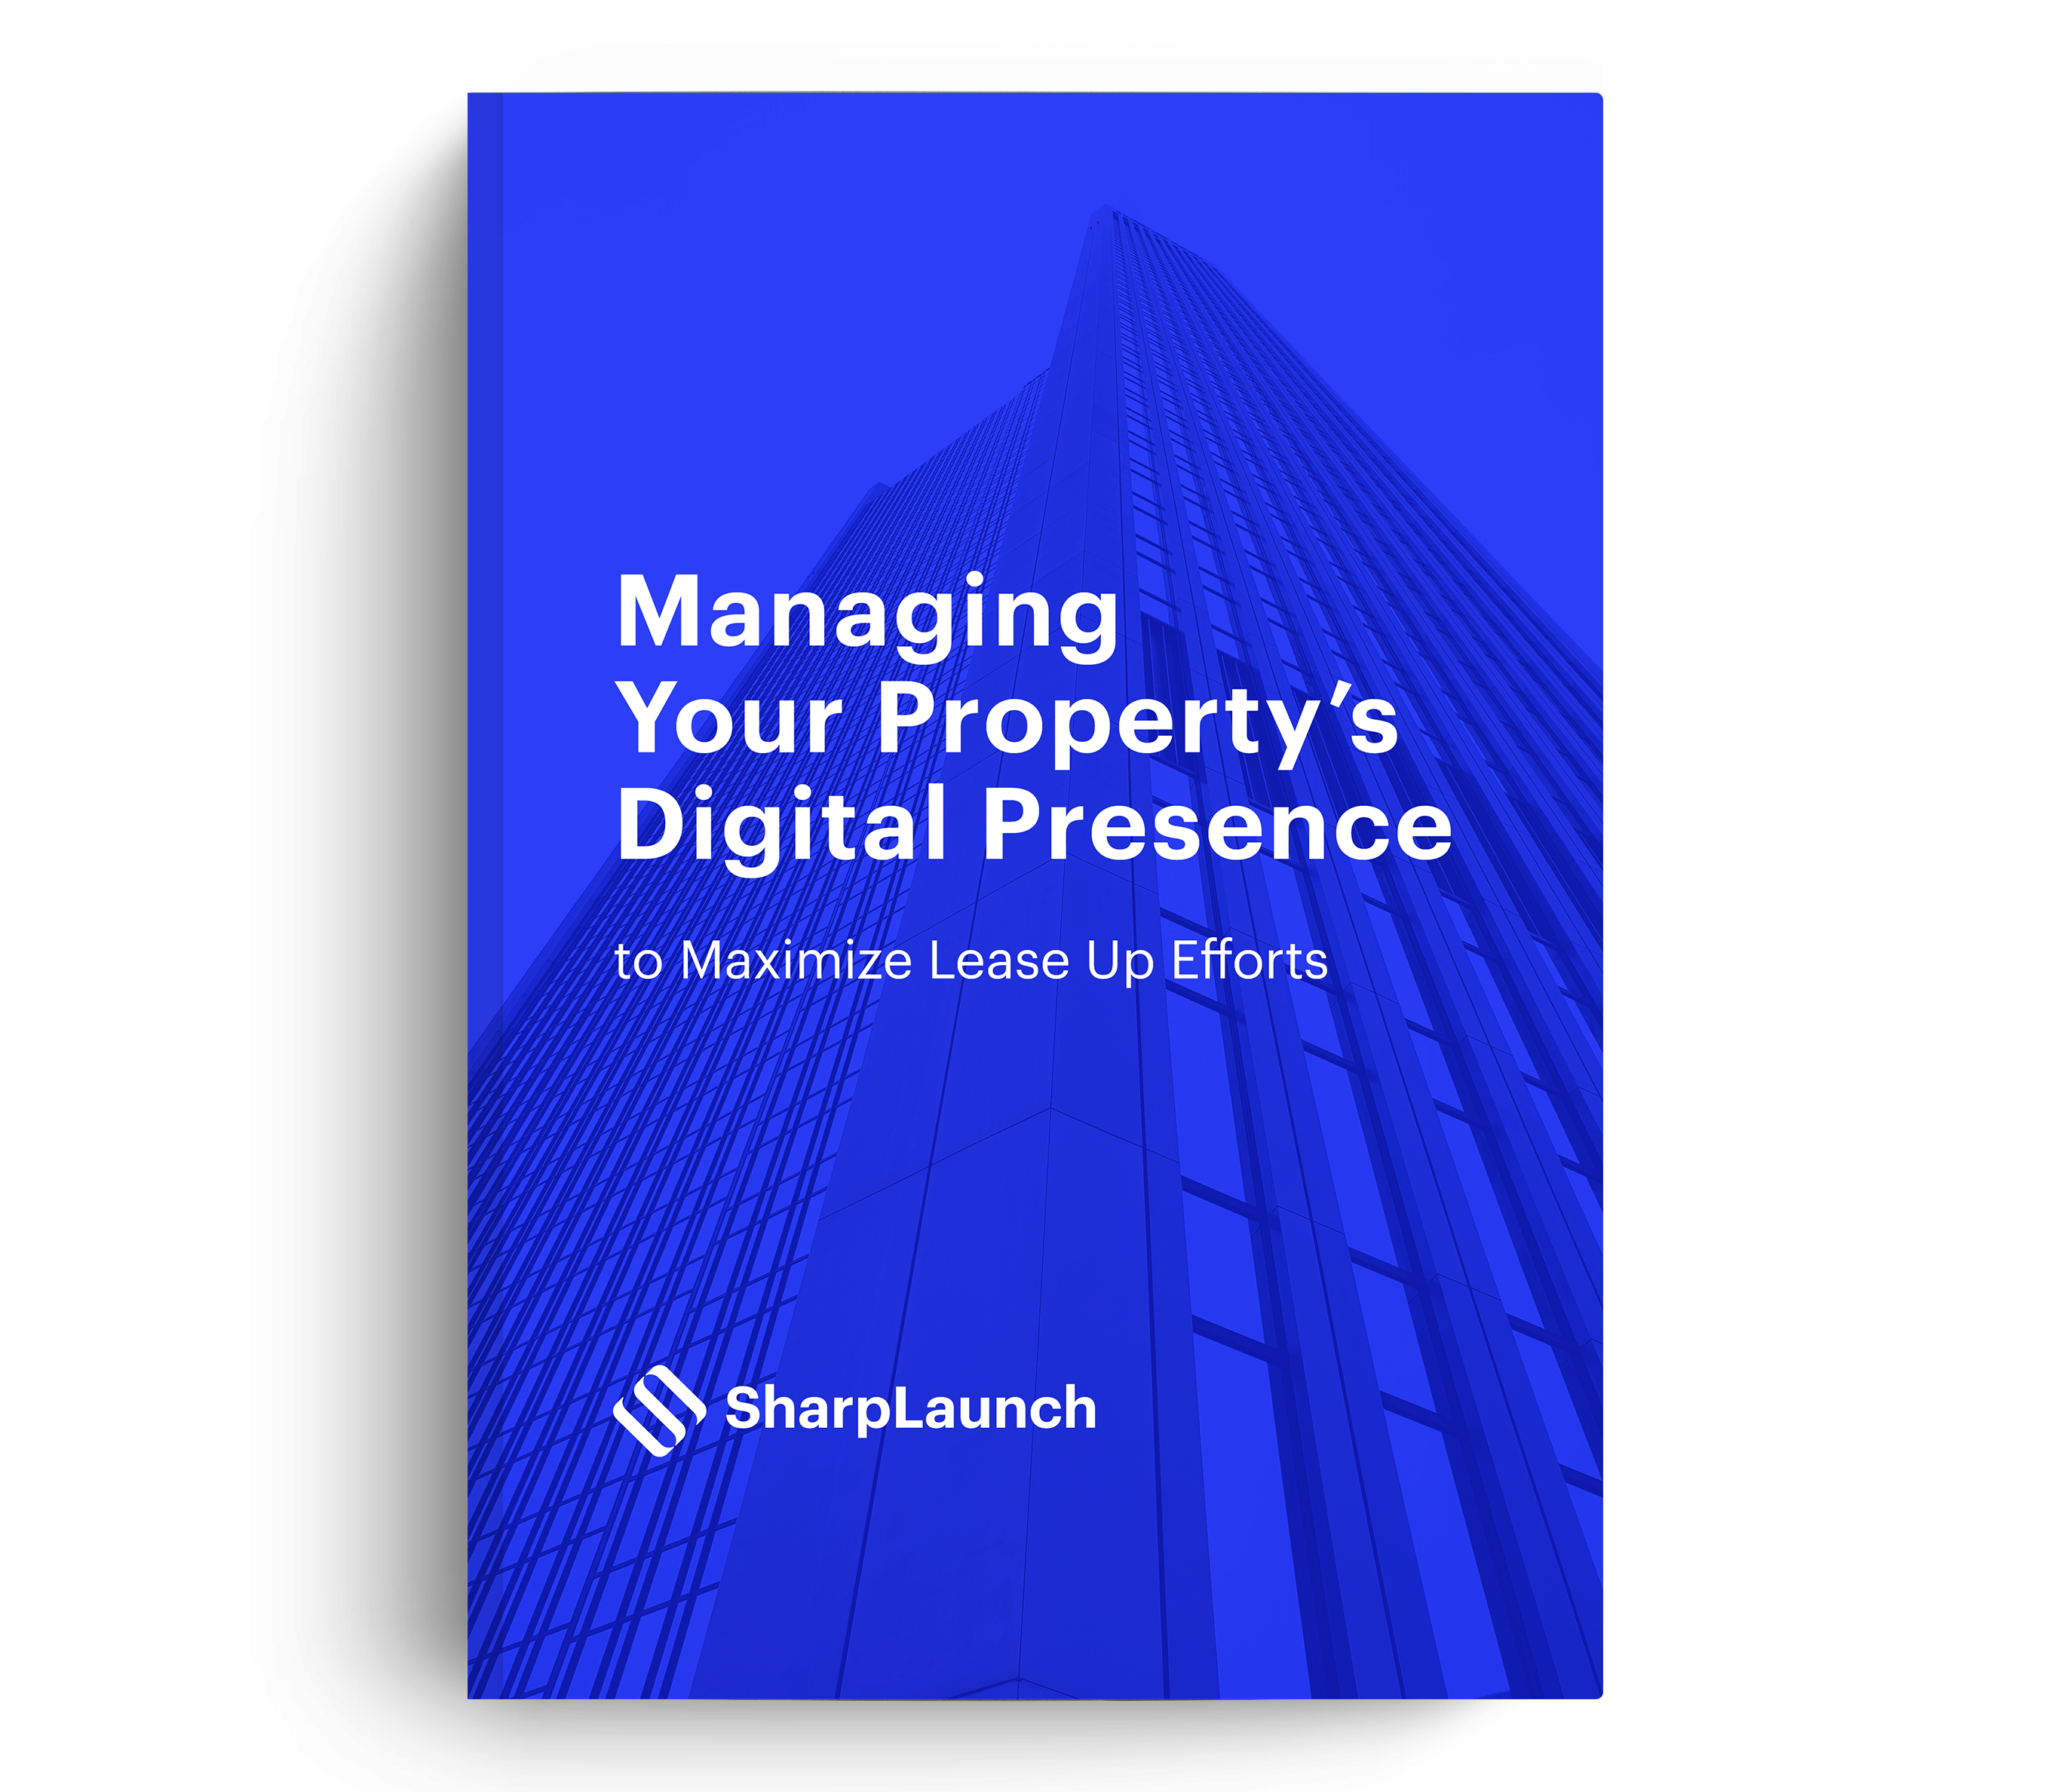 Managing Your Property's Digital Presence To Maximize Lease Up Efforts